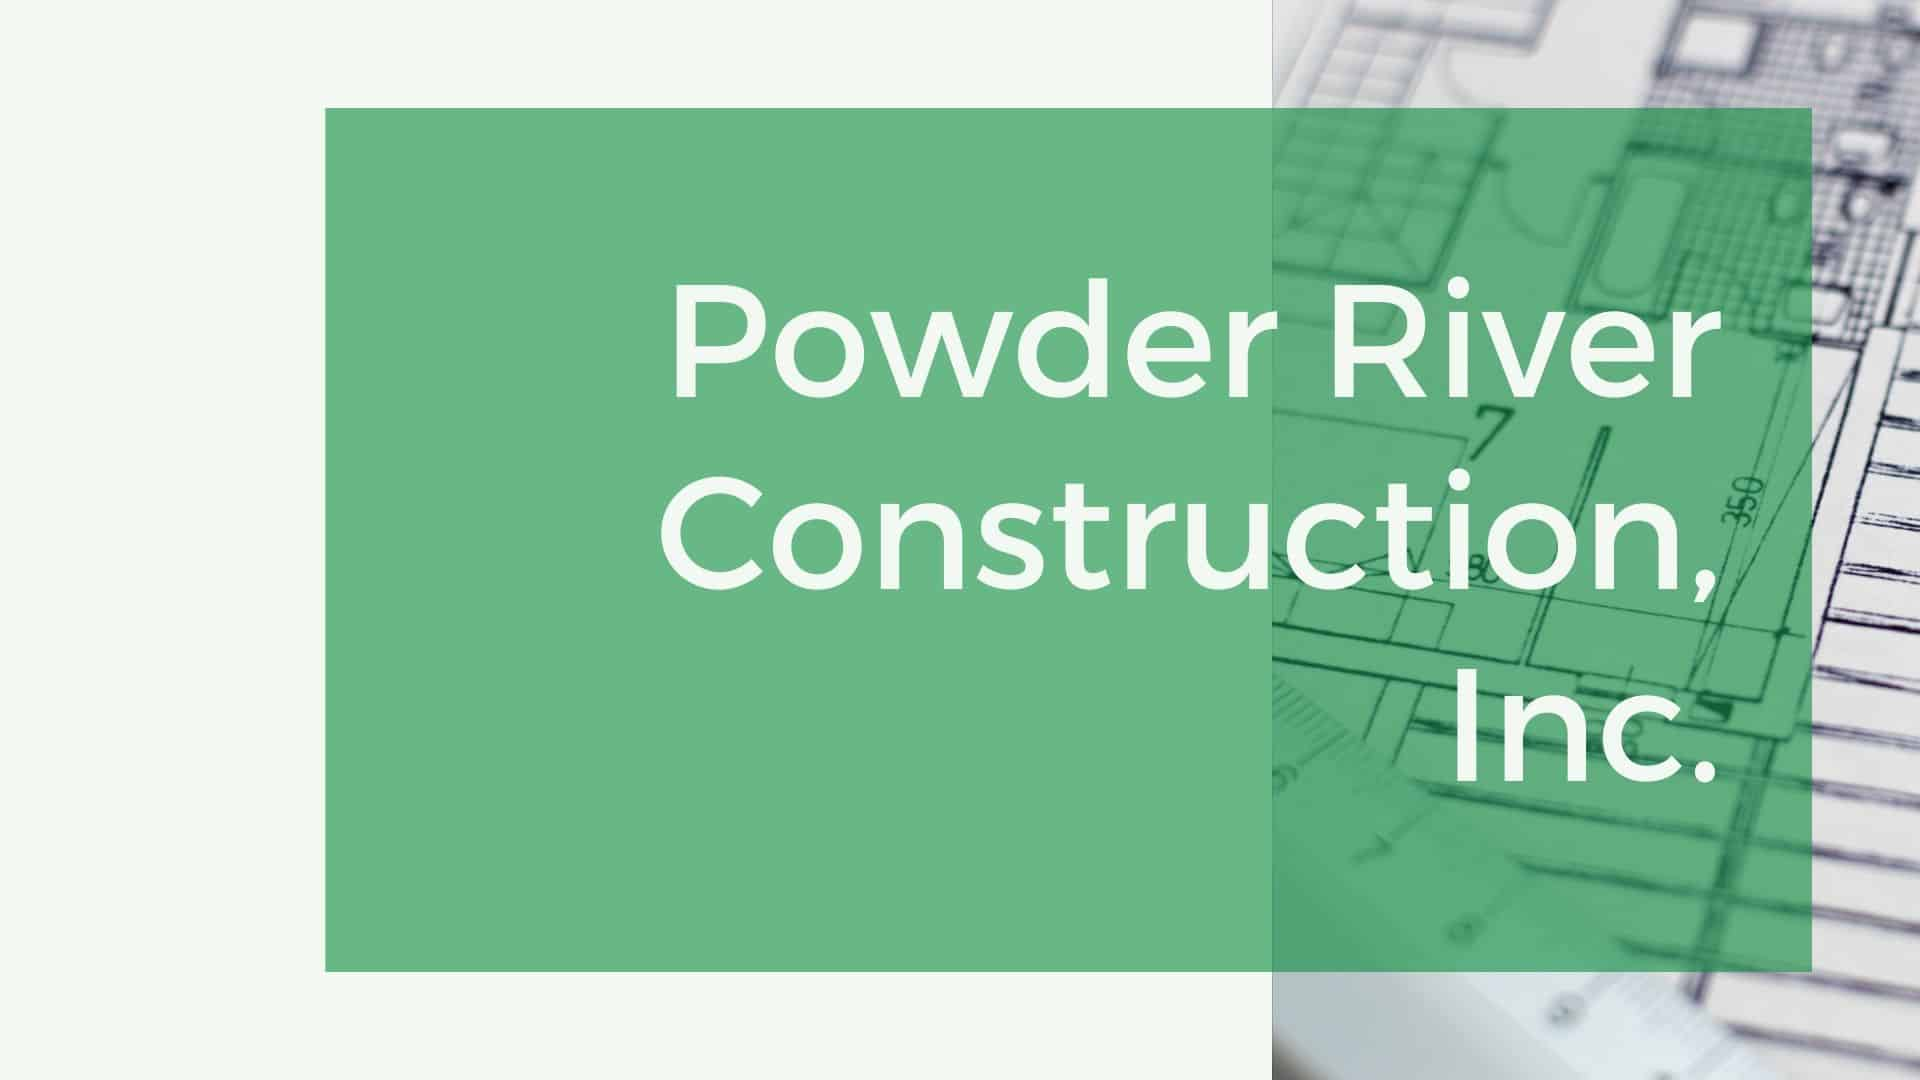 Powder River Construction Inc